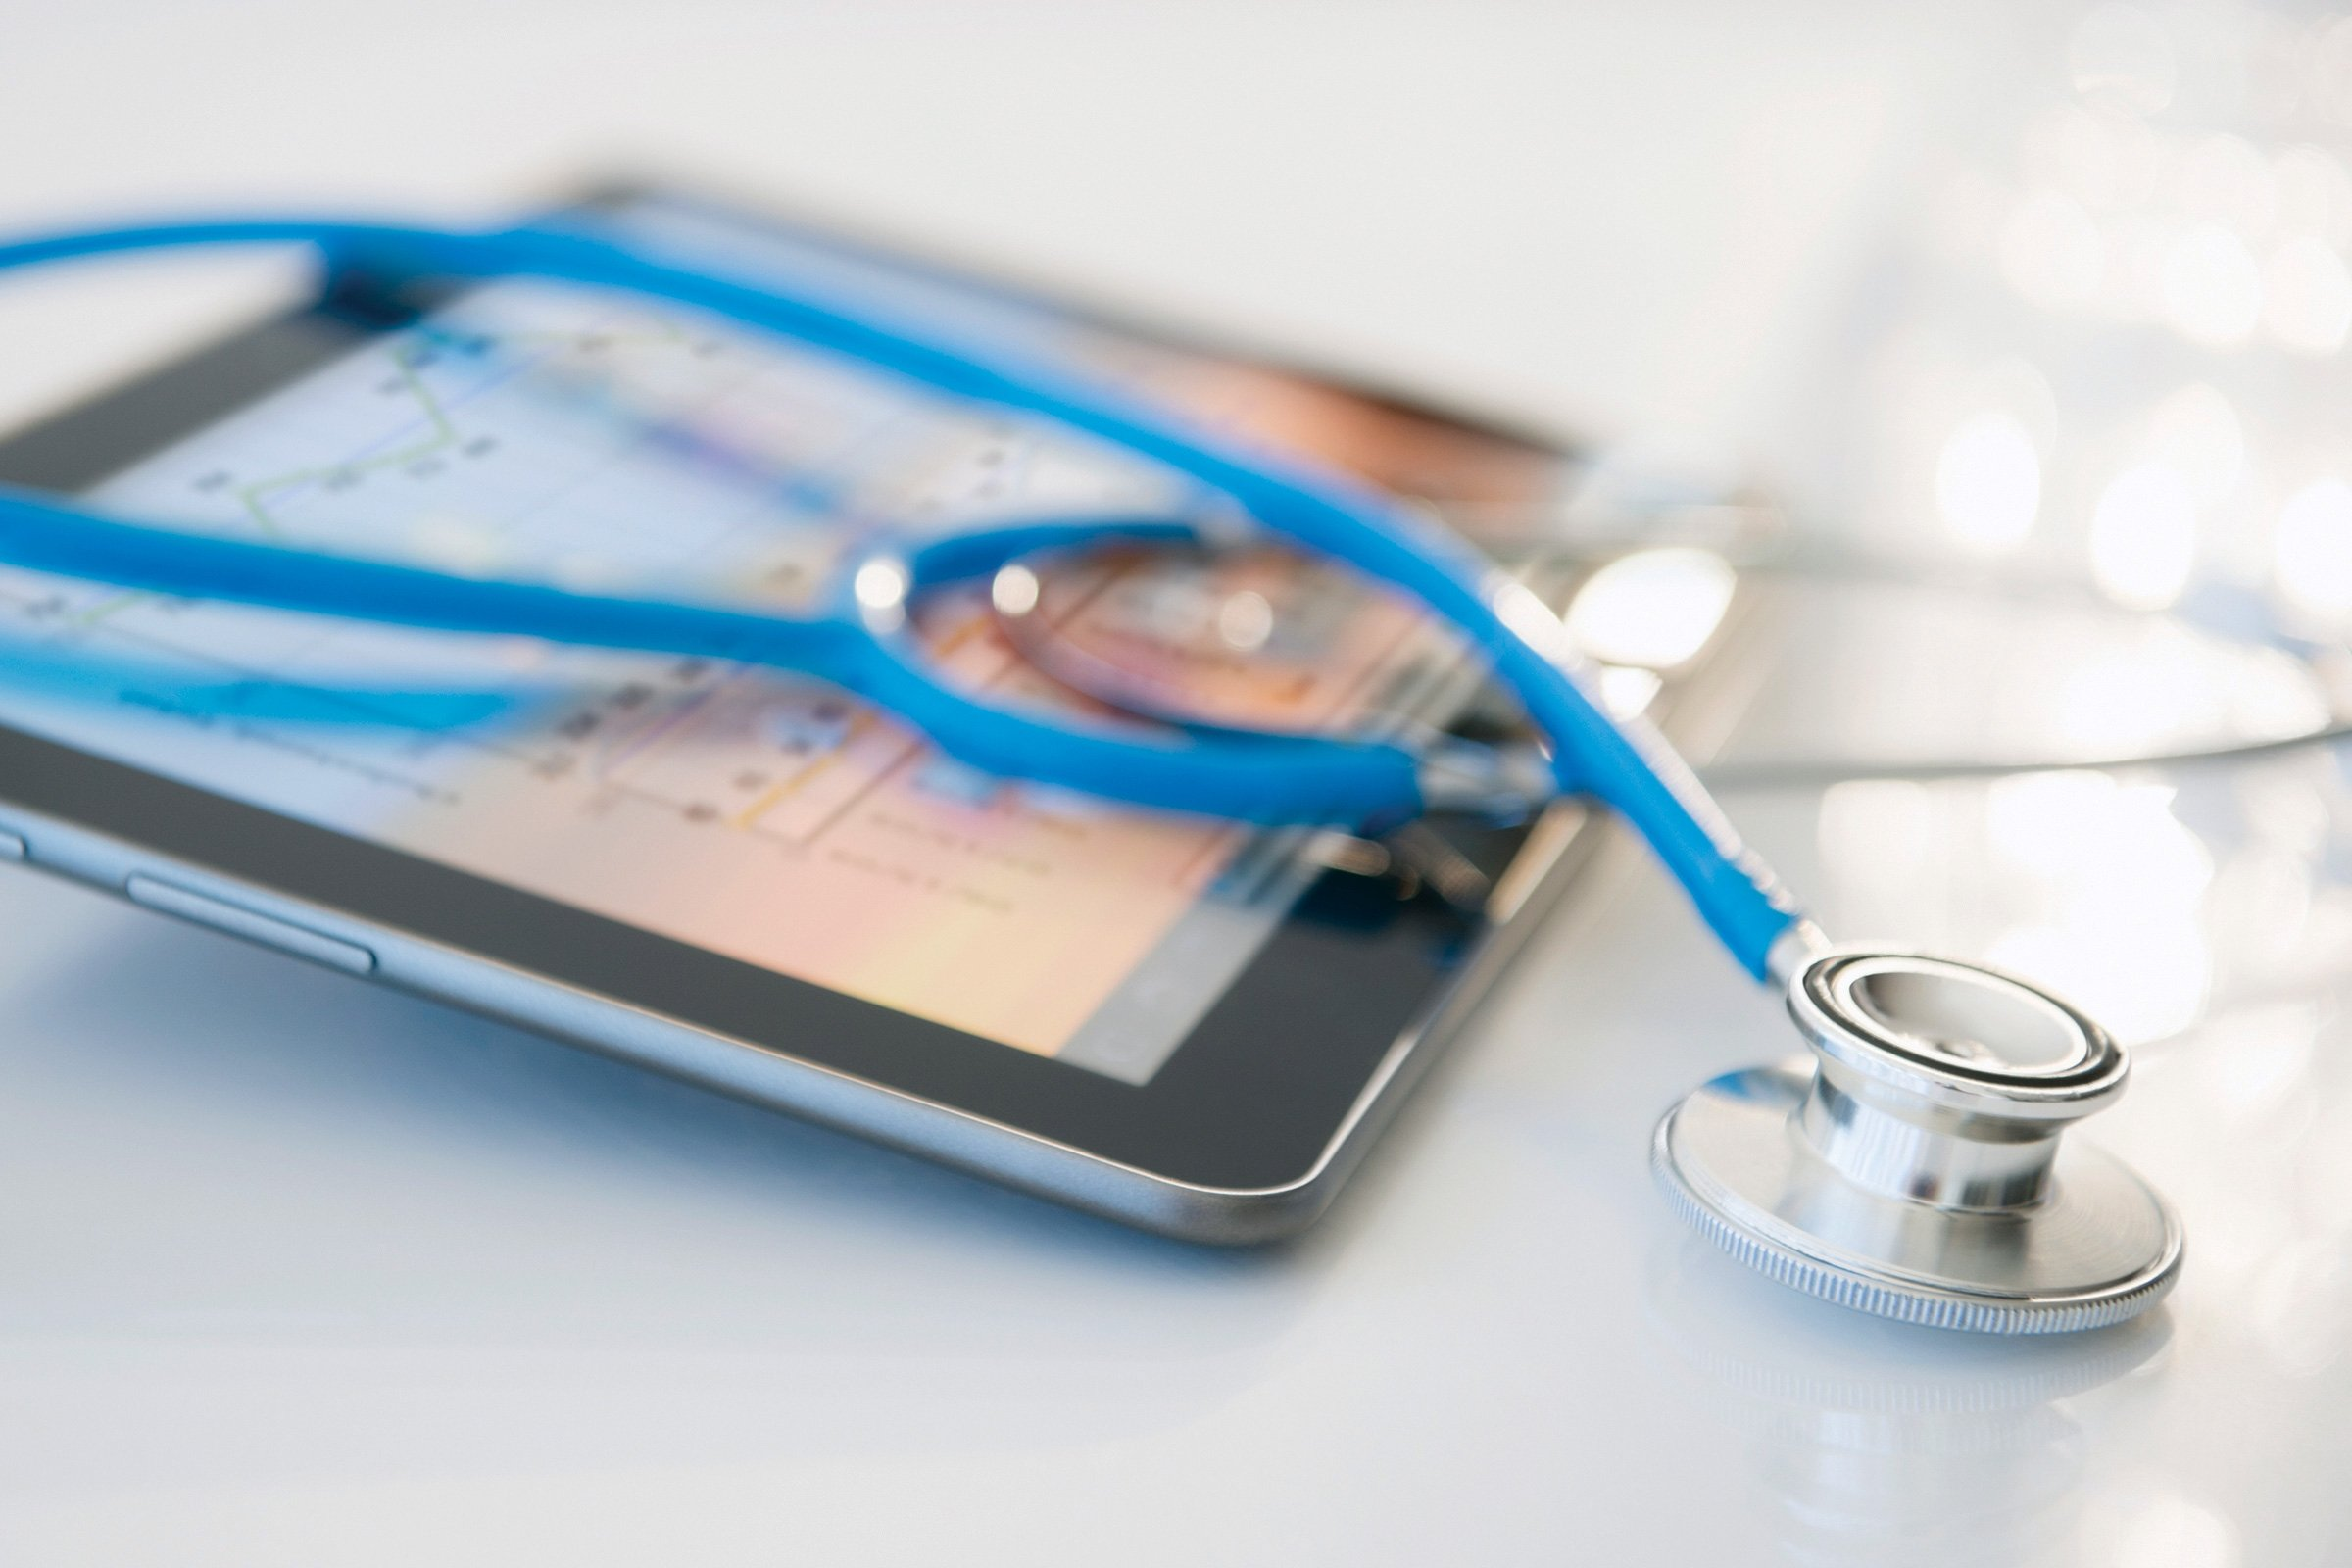 CHS accused of making false claims about EHR tech